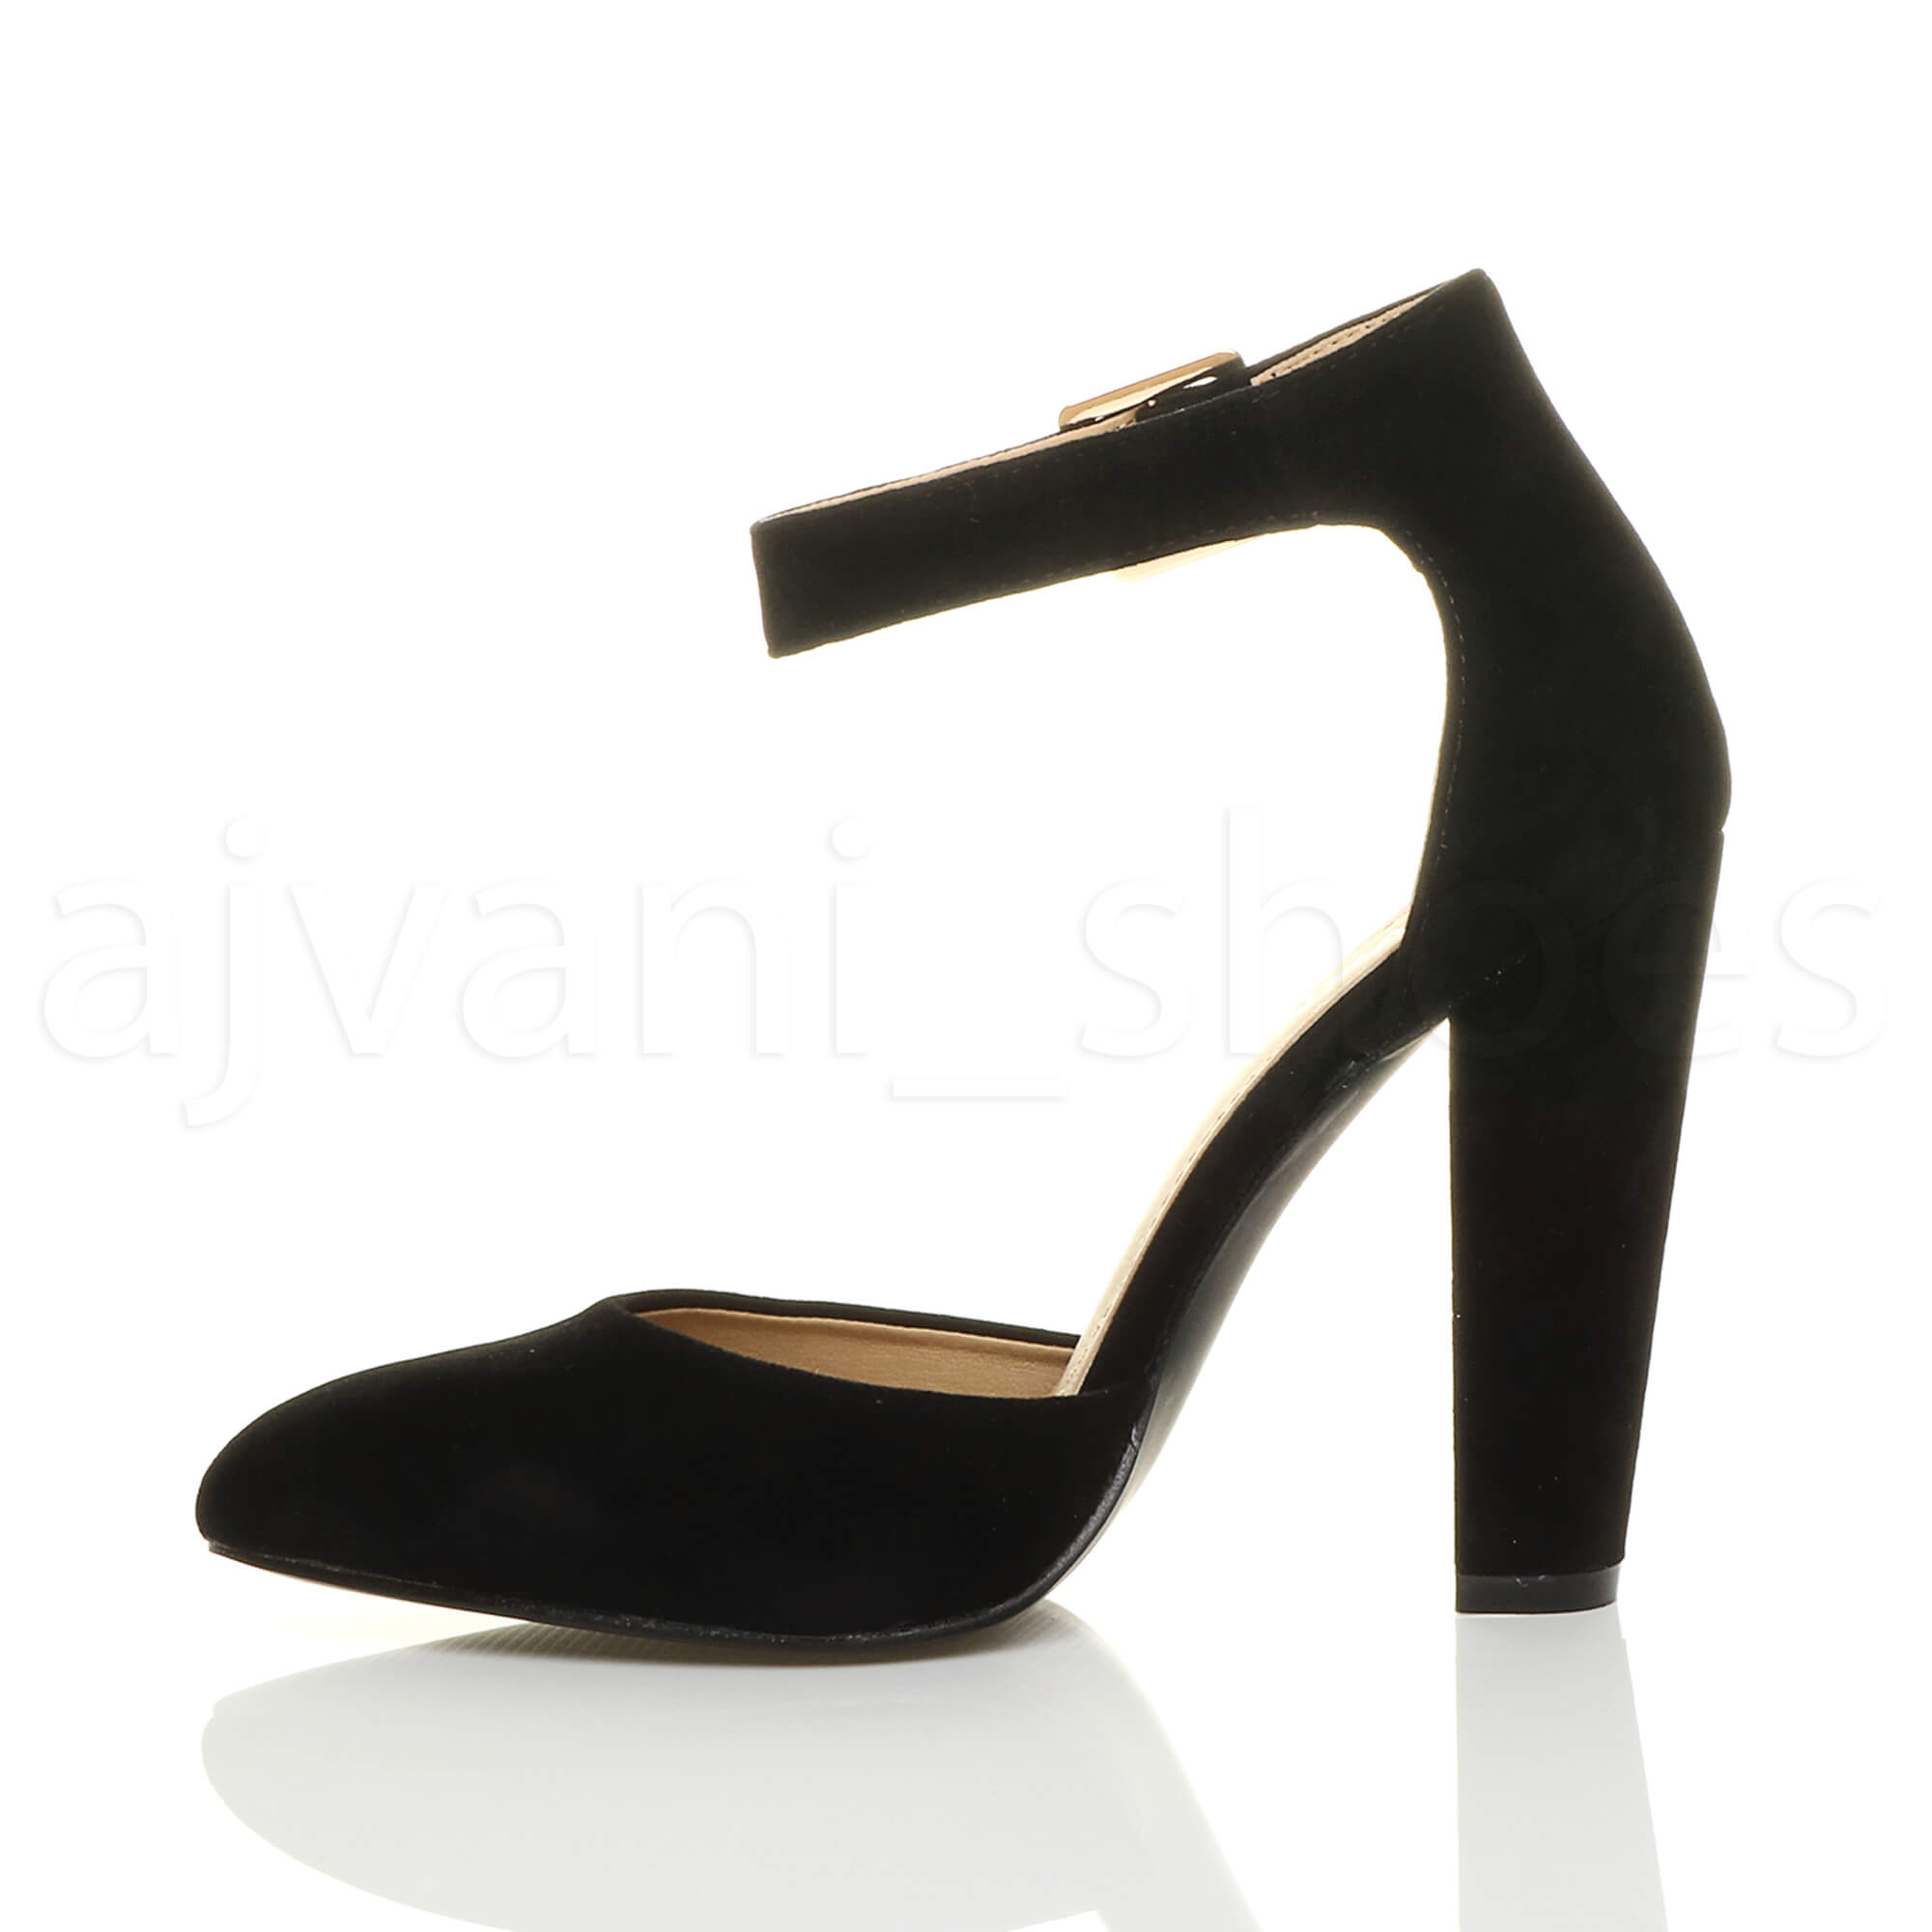 WOMENS-LADIES-HIGH-BLOCK-HEEL-ANKLE-STRAP-BUCKLE-POINTED-COURT-SHOES-SIZE thumbnail 18